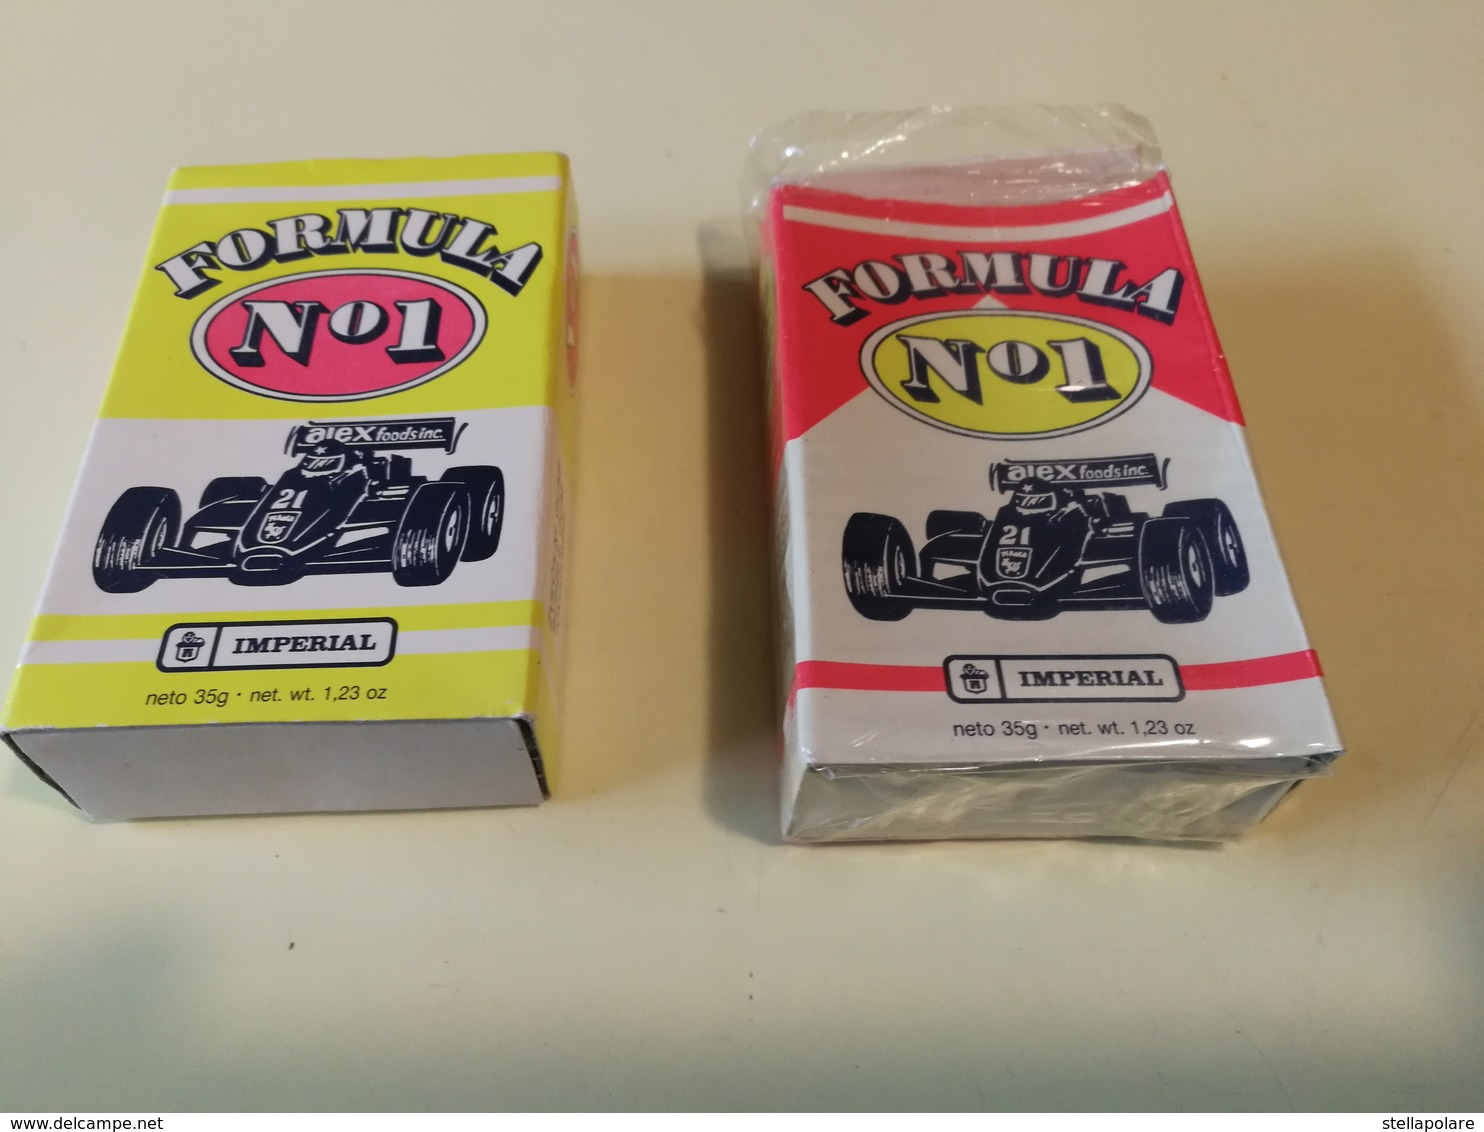 IMPERIAL FORMULA 1 BUBBLE GUM VINTAGE PACKET YUGOSLAVIA ZVAKE - Other Collections